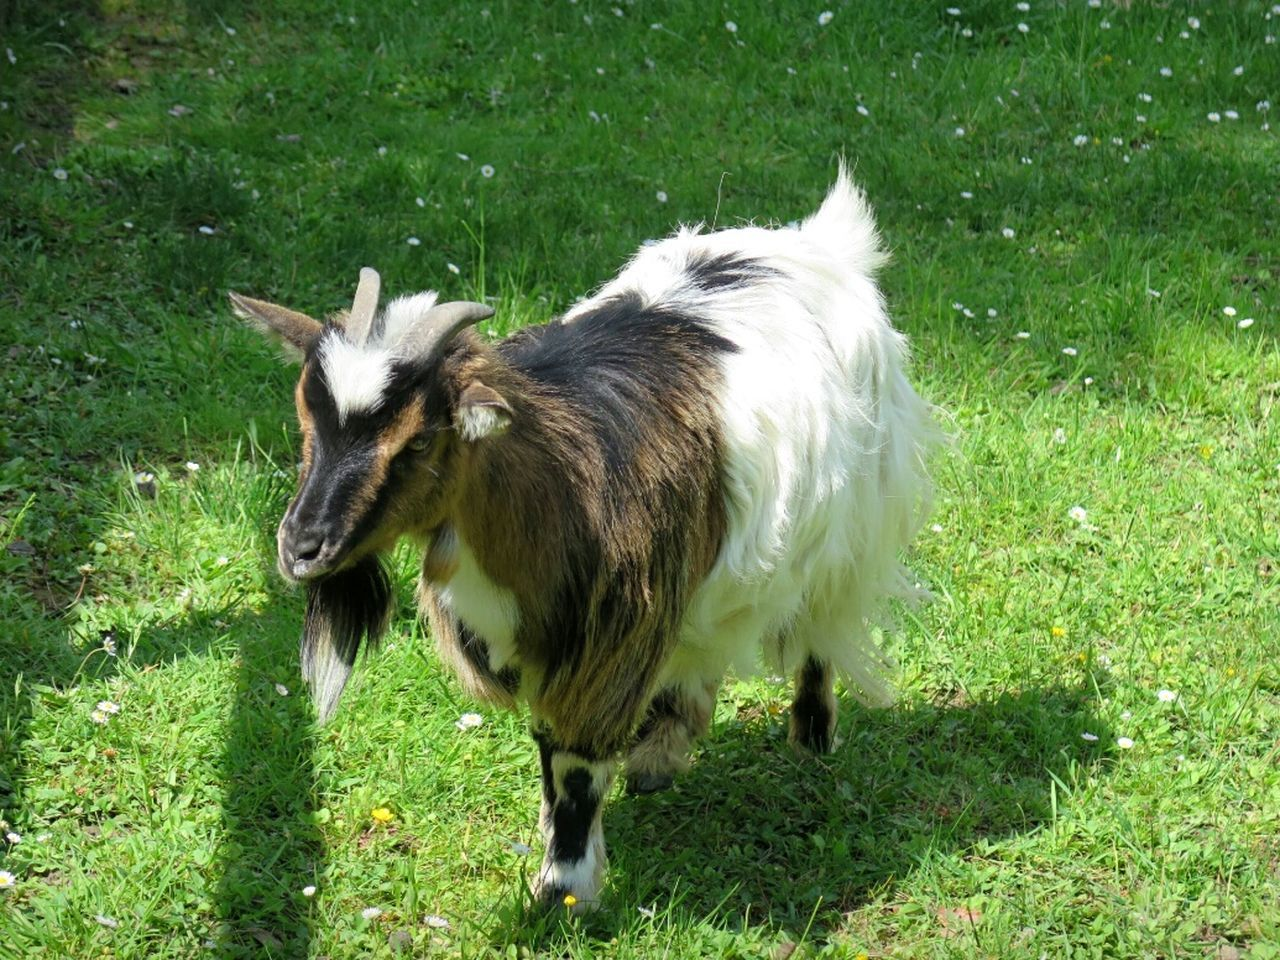 animal themes, domestic animals, grass, one animal, field, livestock, green color, mammal, day, outdoors, no people, nature, full length